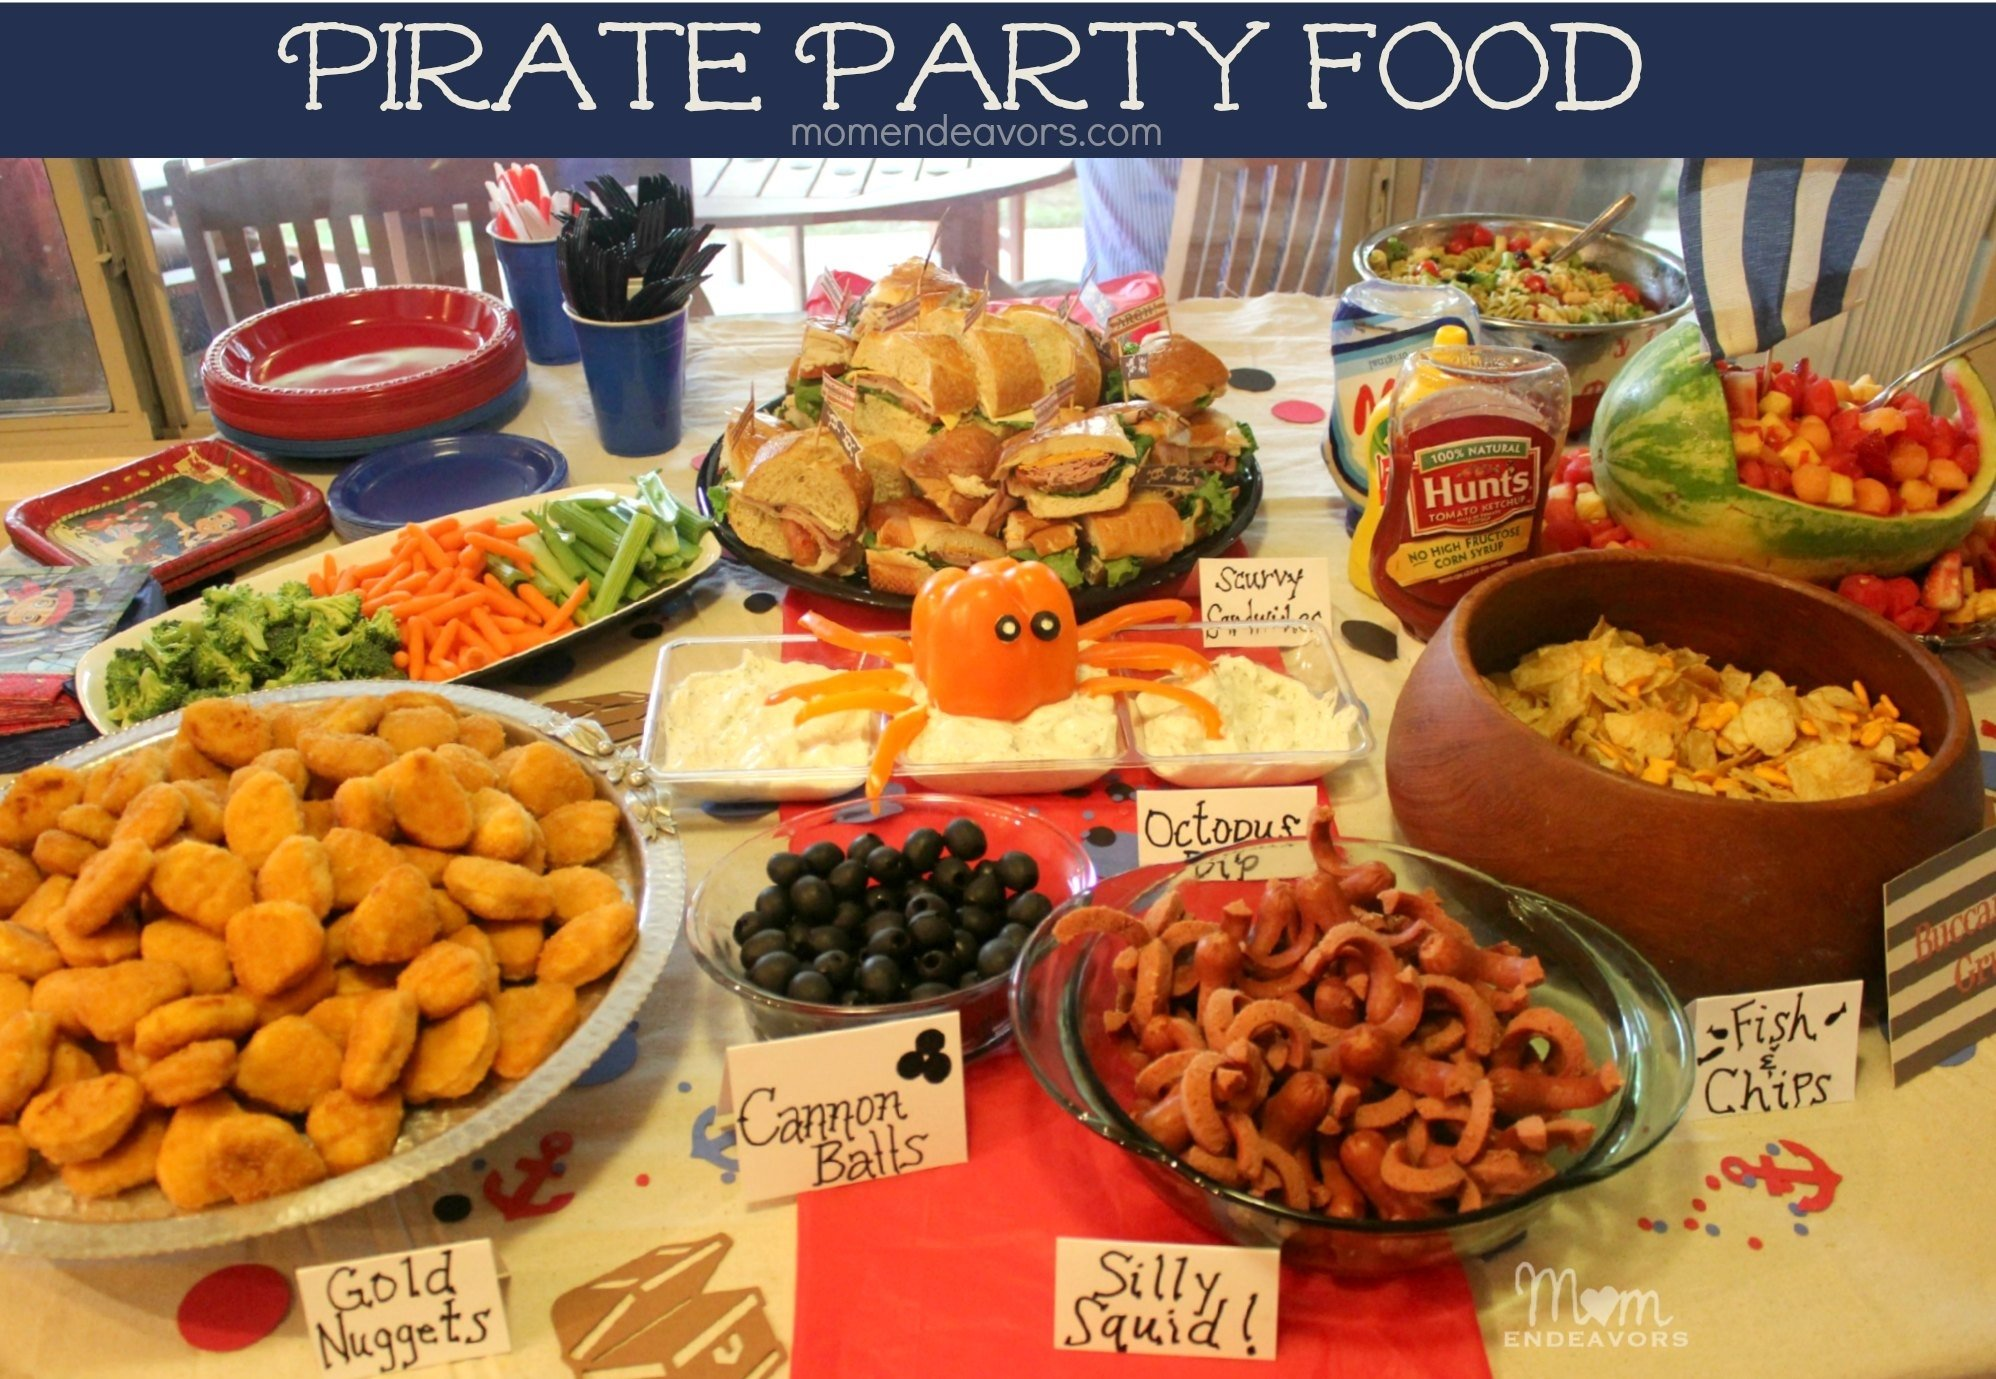 10 Elegant Food Ideas For Birthday Parties jake and the never land pirates birthday party food 2 2021